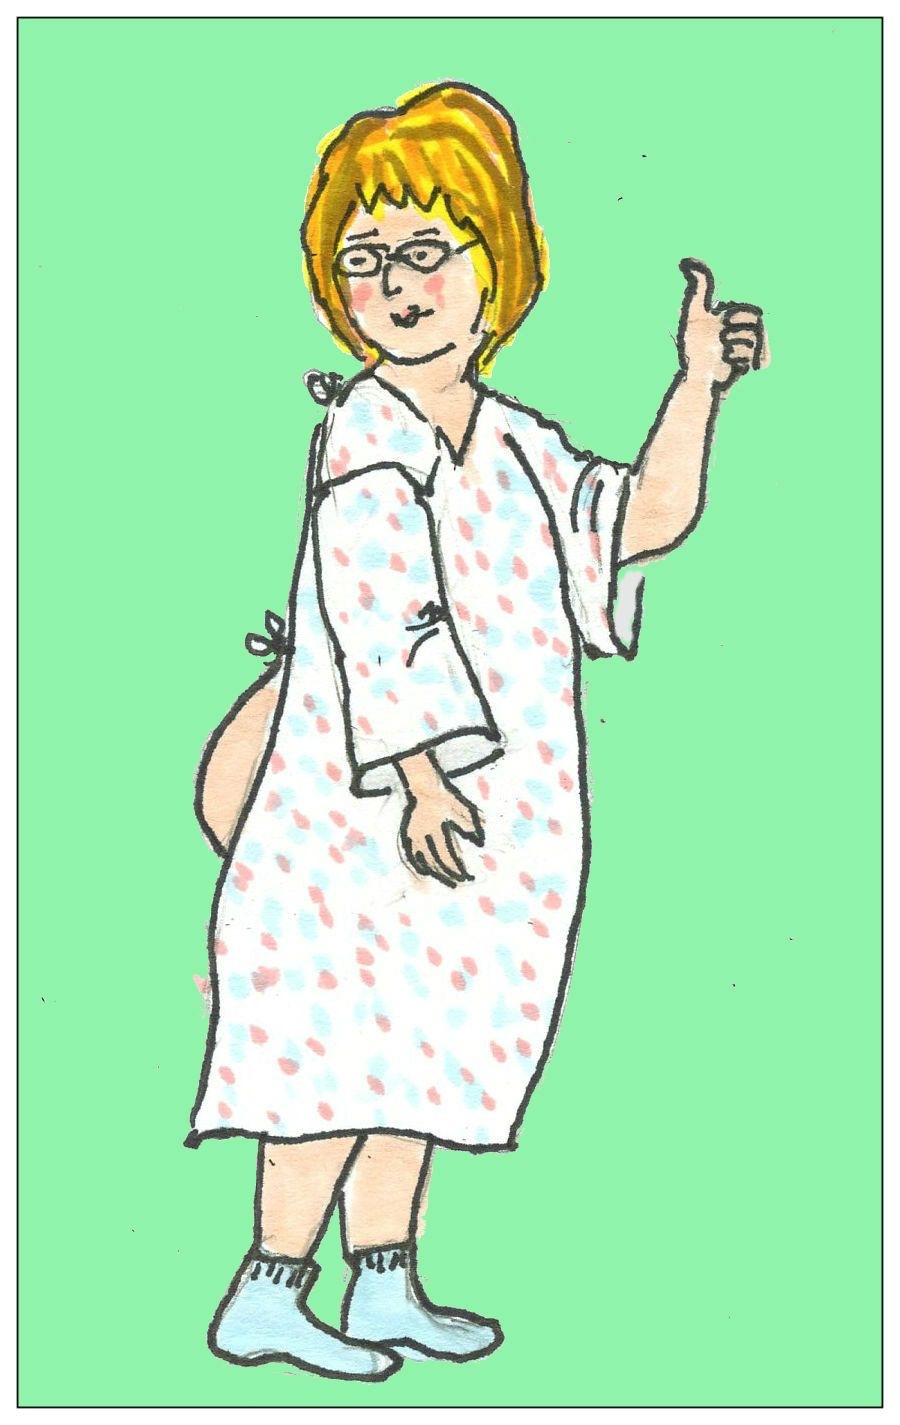 Pin By Nancy Roman On My Best Blog Drawings From Http Notquiteold WordPress Com Colonoscopy Funny I Am Awesome